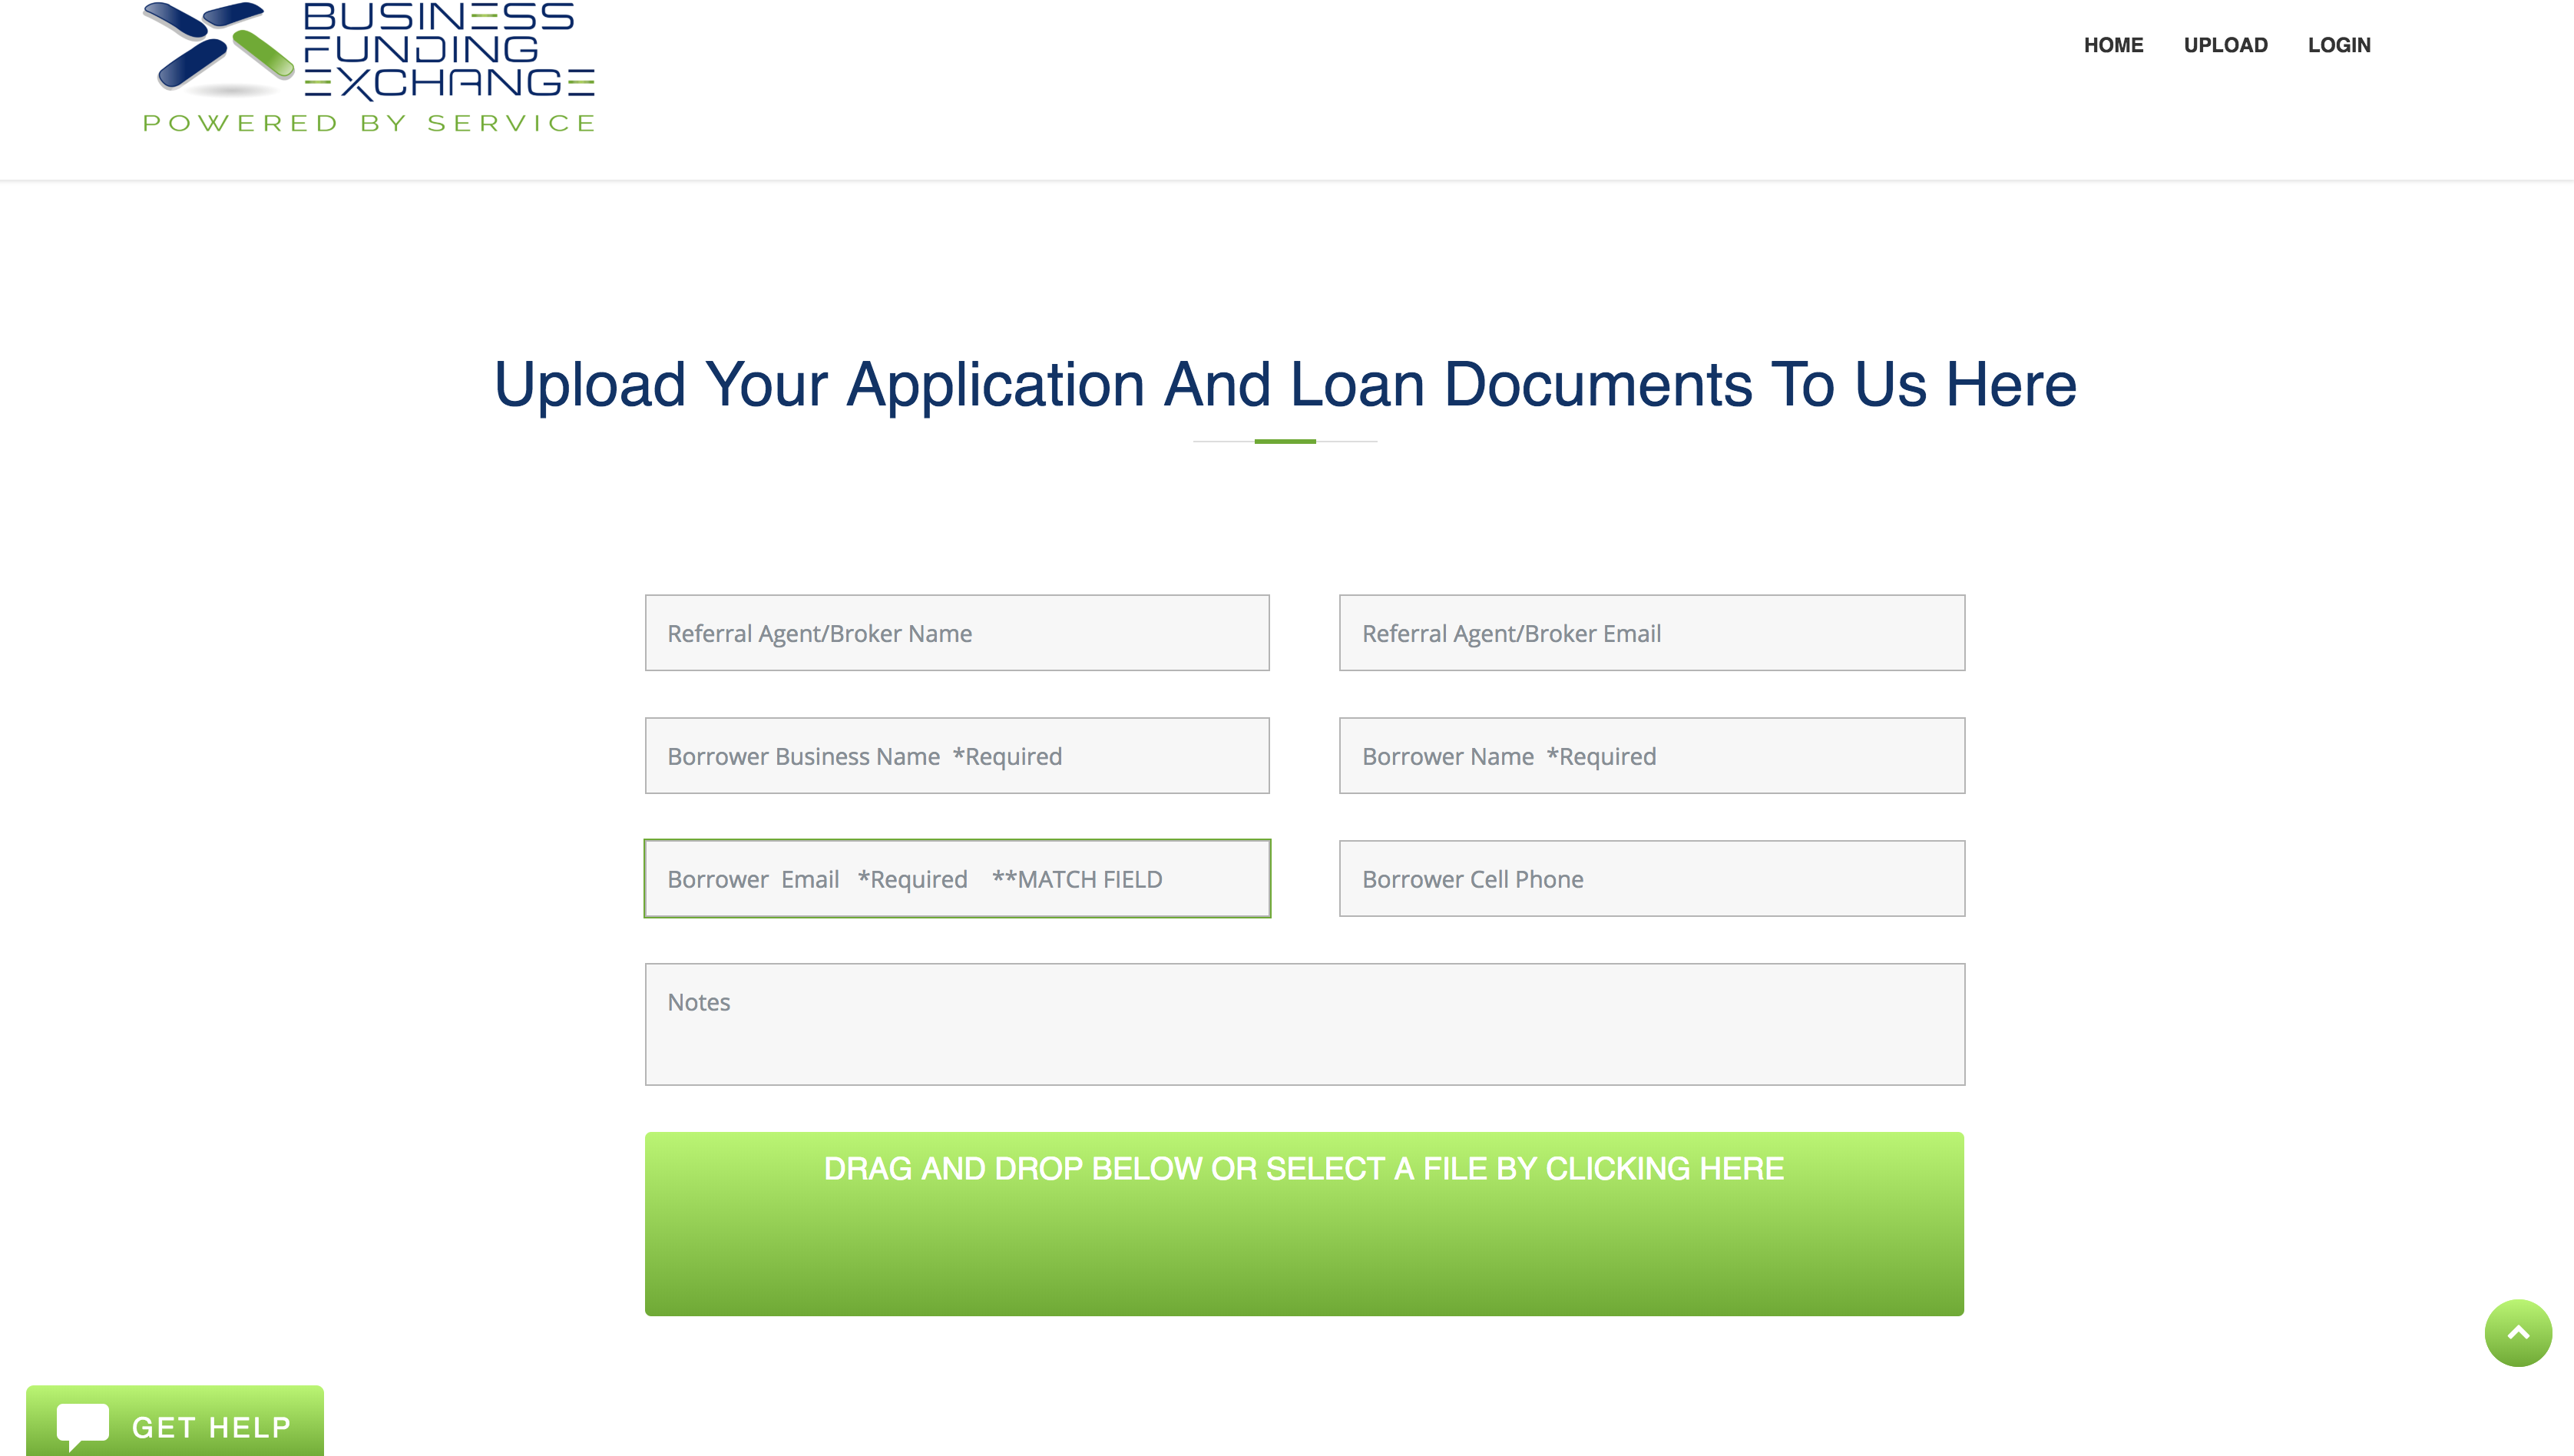 Business Funding Exchange Portal Upload Documents